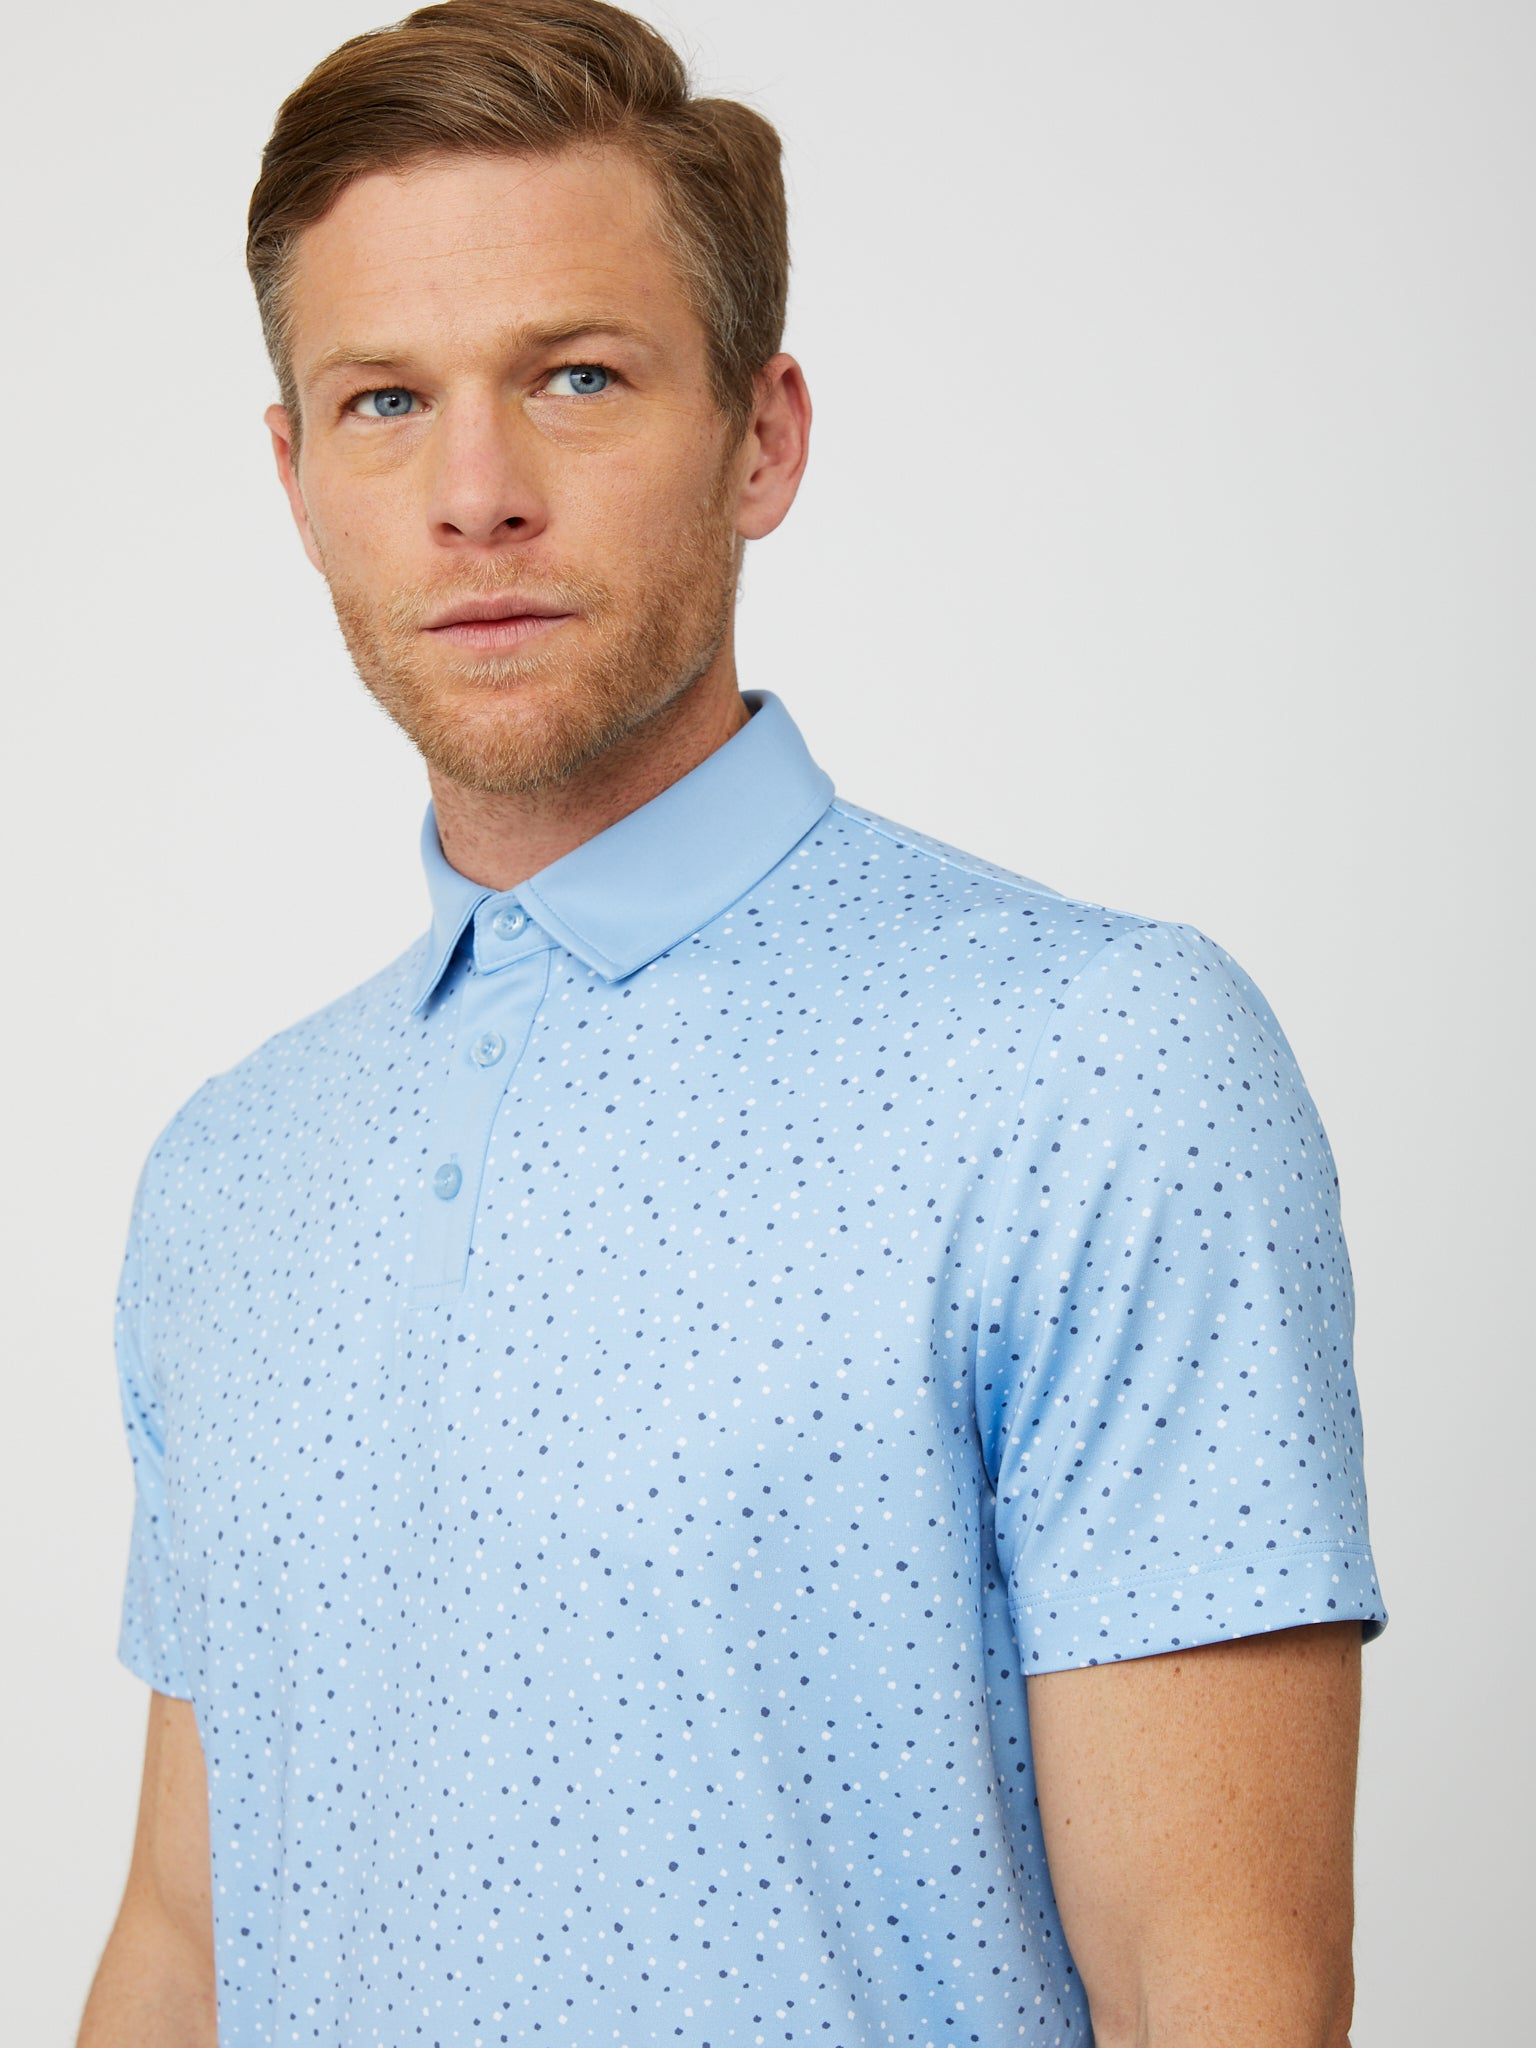 Upton Polo in Placid Blue/Multi